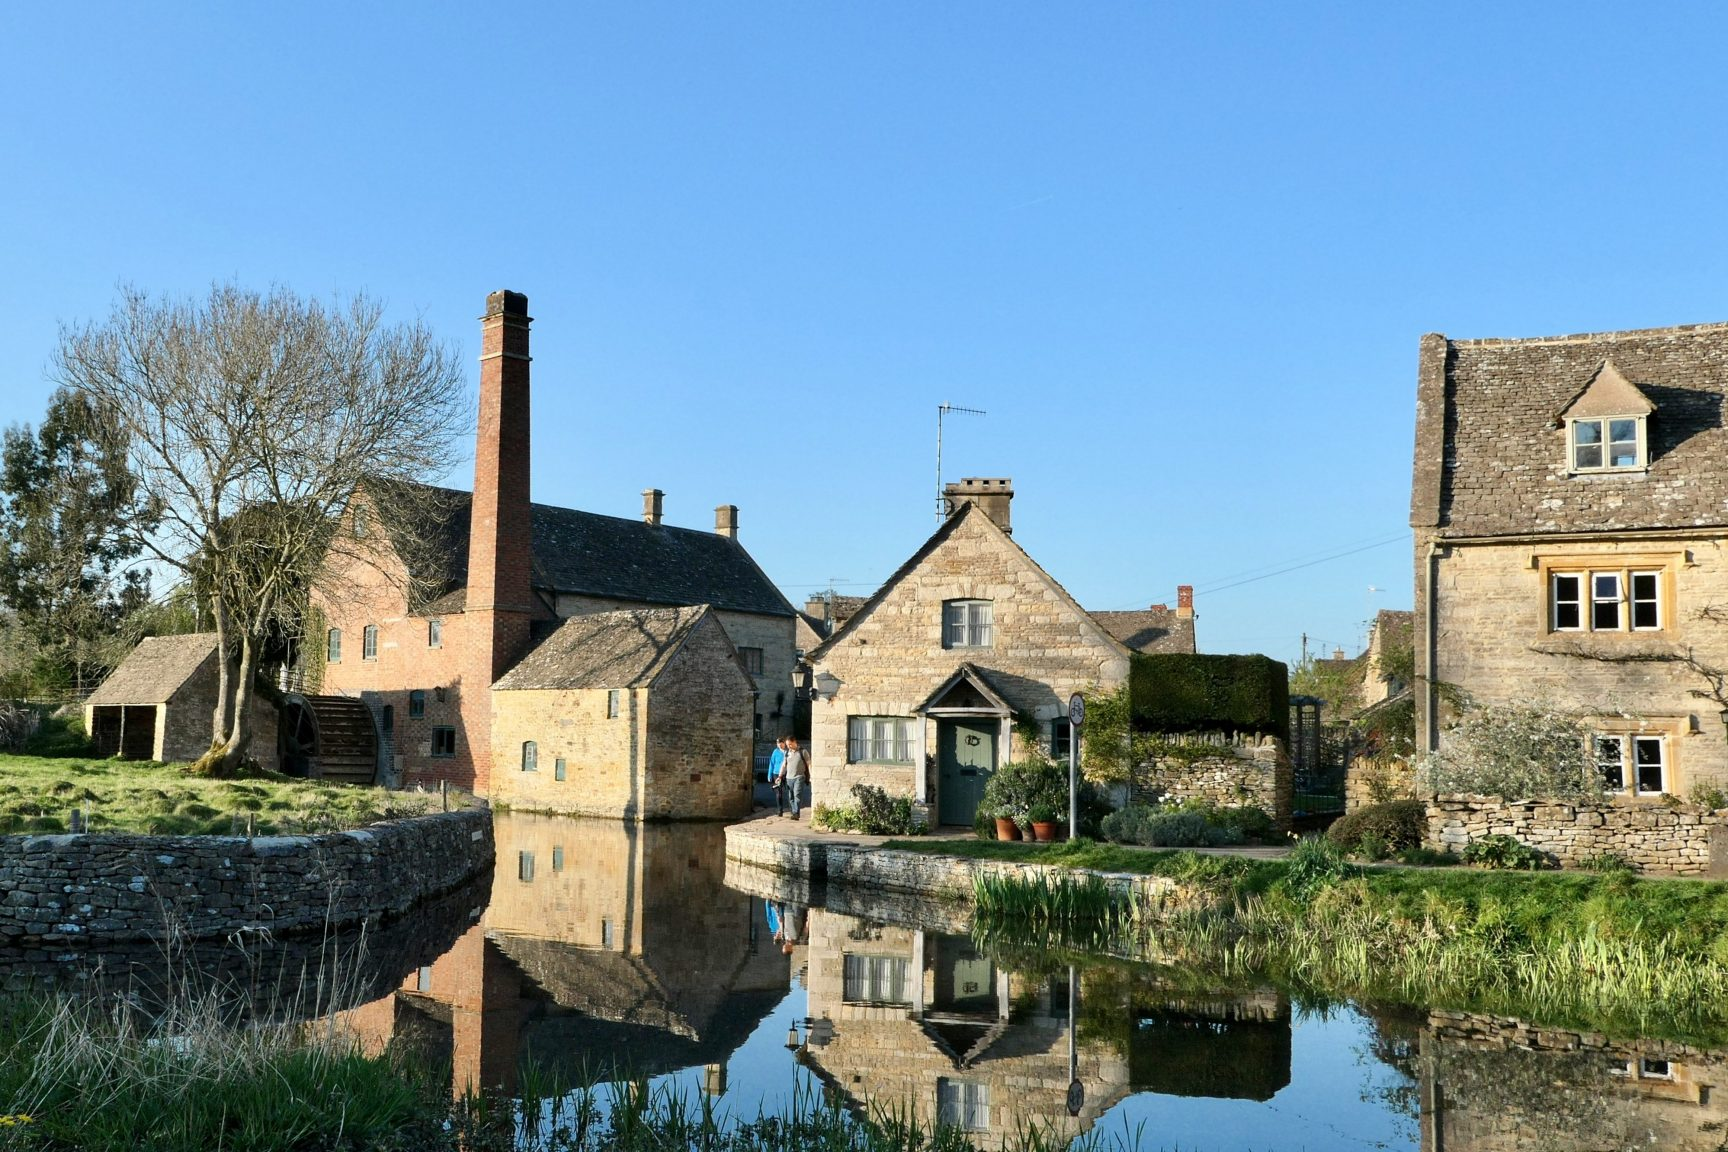 Small cottages beside a small stream with a water mill. It's a lovely sunny day and the village looks quaint.